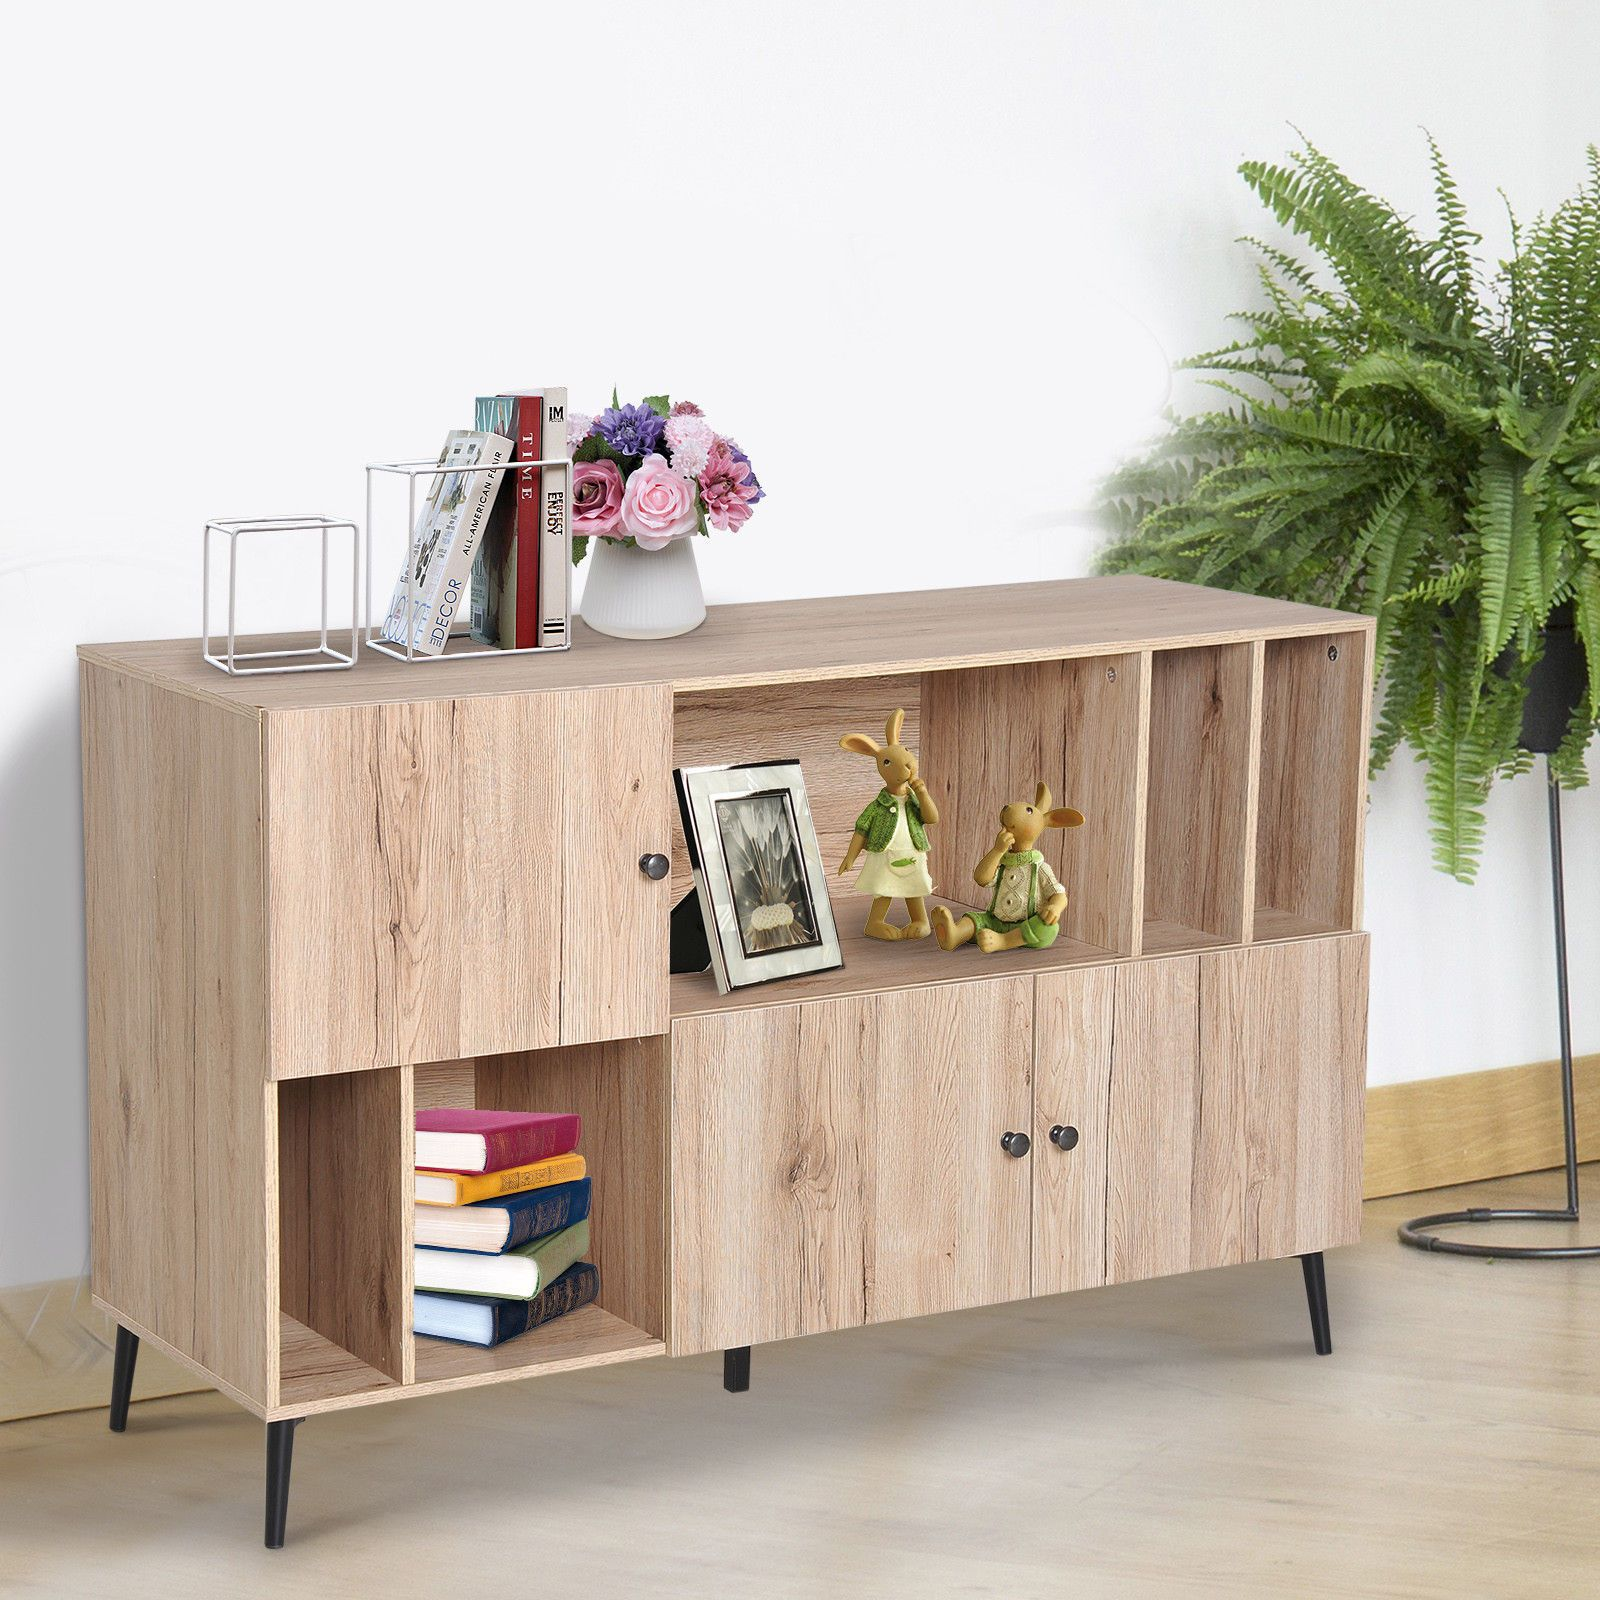 Scandinavian Sideboard Cabinet Buffet Storage Metal Legs Oak is part of Living Room Storage Buffet - Stylish Design Scandinavian style oak wood buffet to add a touch of elegance to your interior  Perfect for living room office bedroom entrance etc   	Large storage space 3 closets with doors and 5 recesses of 3 different sizes allowing you to store your books CD Blu ray or decorations and each closet is equipped with a round opening handle   	Metal legs 4 inclined metal legs for maximum stability and elegance   	Sturdy Structure Manufactured of robust particle board for long term use   	Overall dimensions 120L x 39W x 74H cm; Foot diameter 3 cm (height 12 cm); Max  recommended 50 Kg